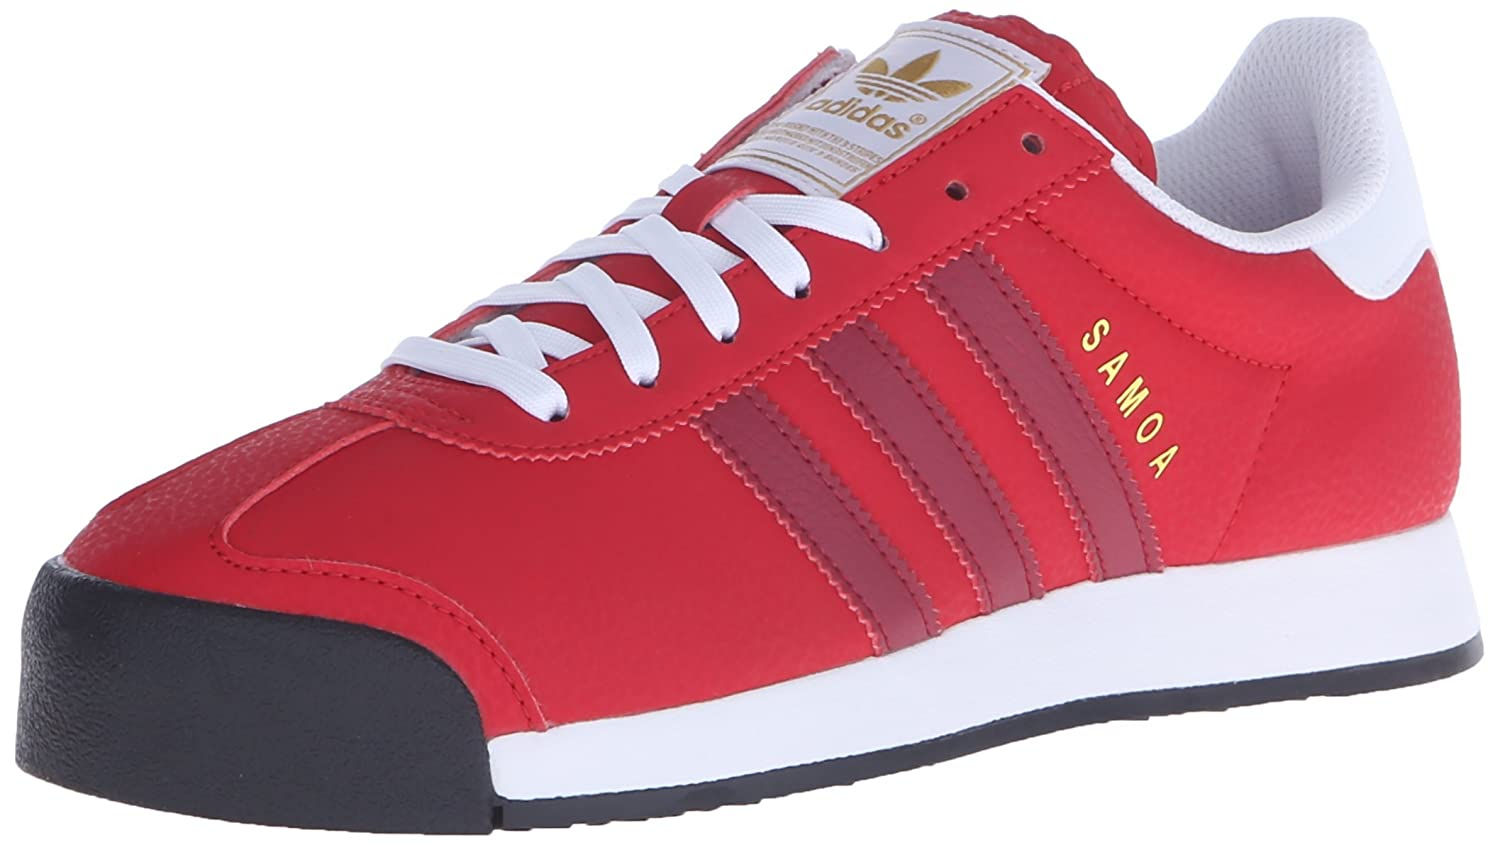 adidas Originals Men's Samoa Fashion Sneaker SAMOA-M